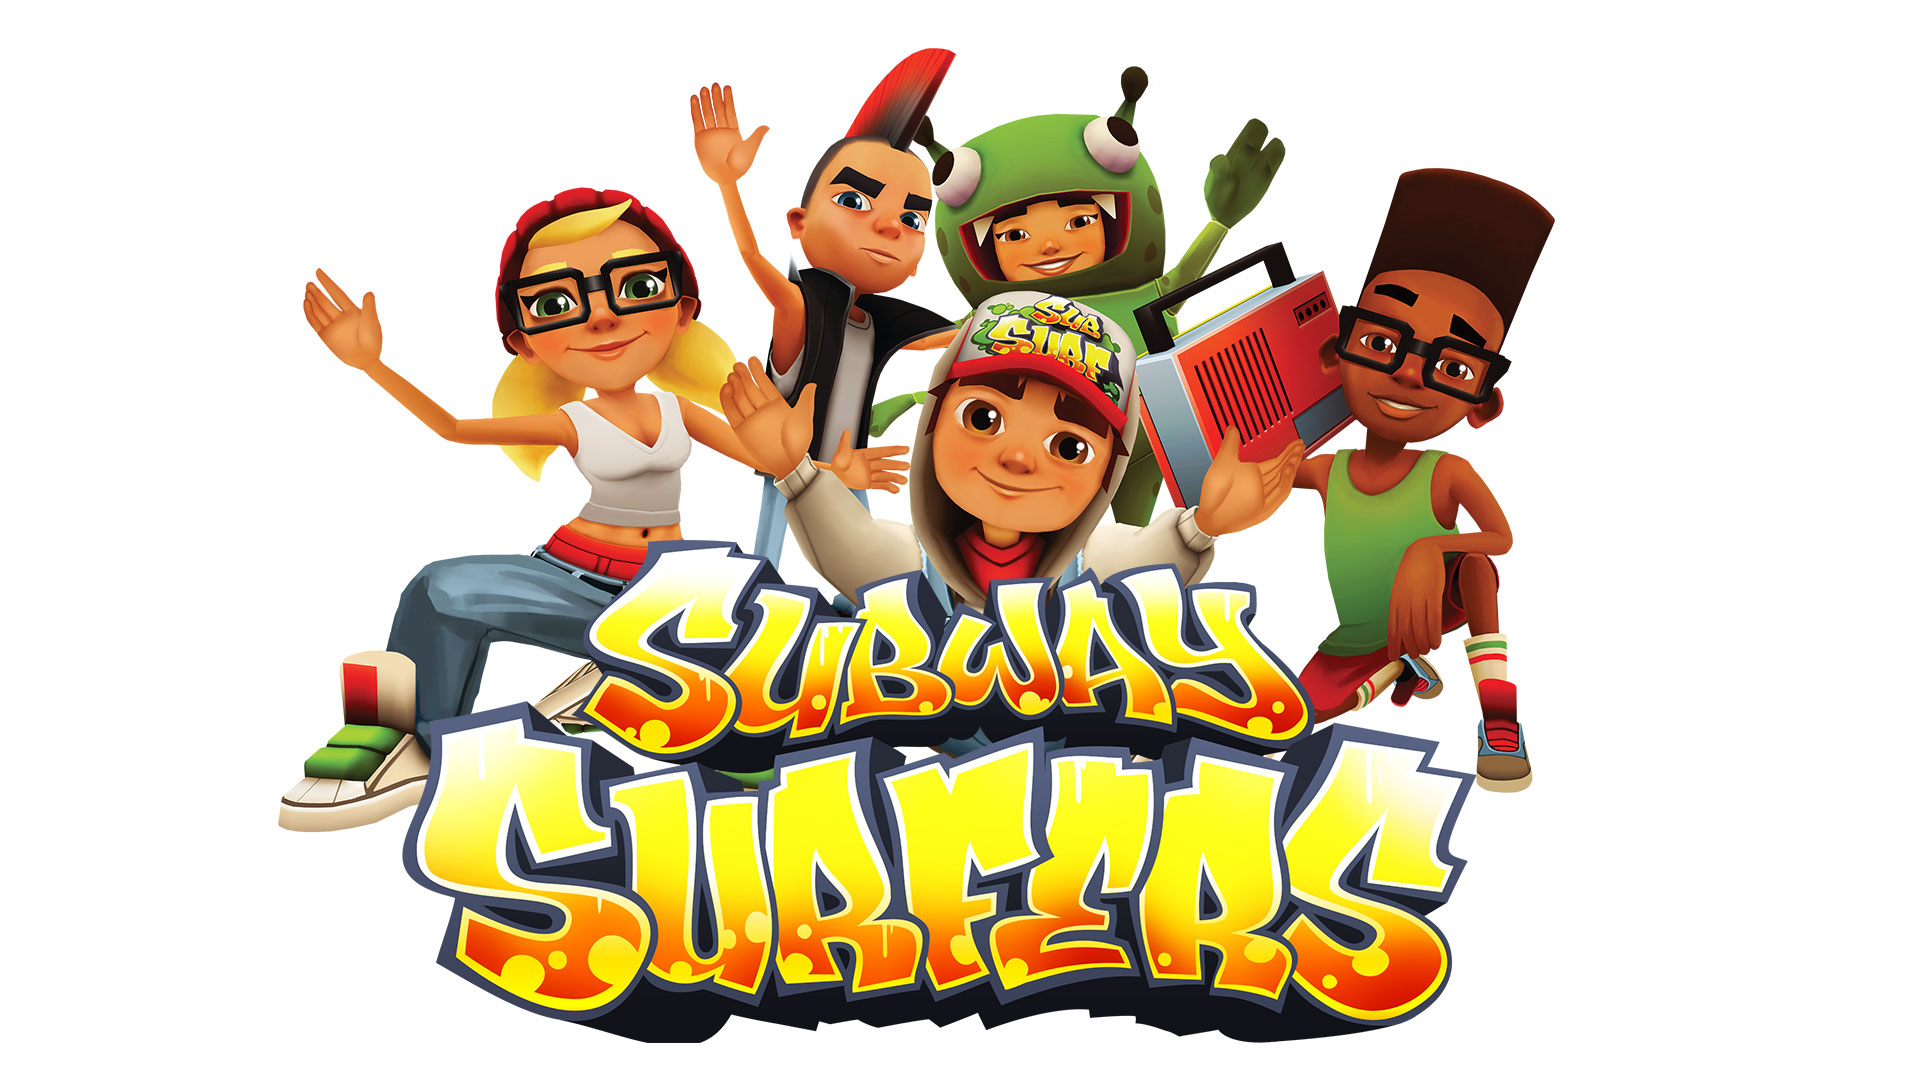 Copy of Subway Surfers